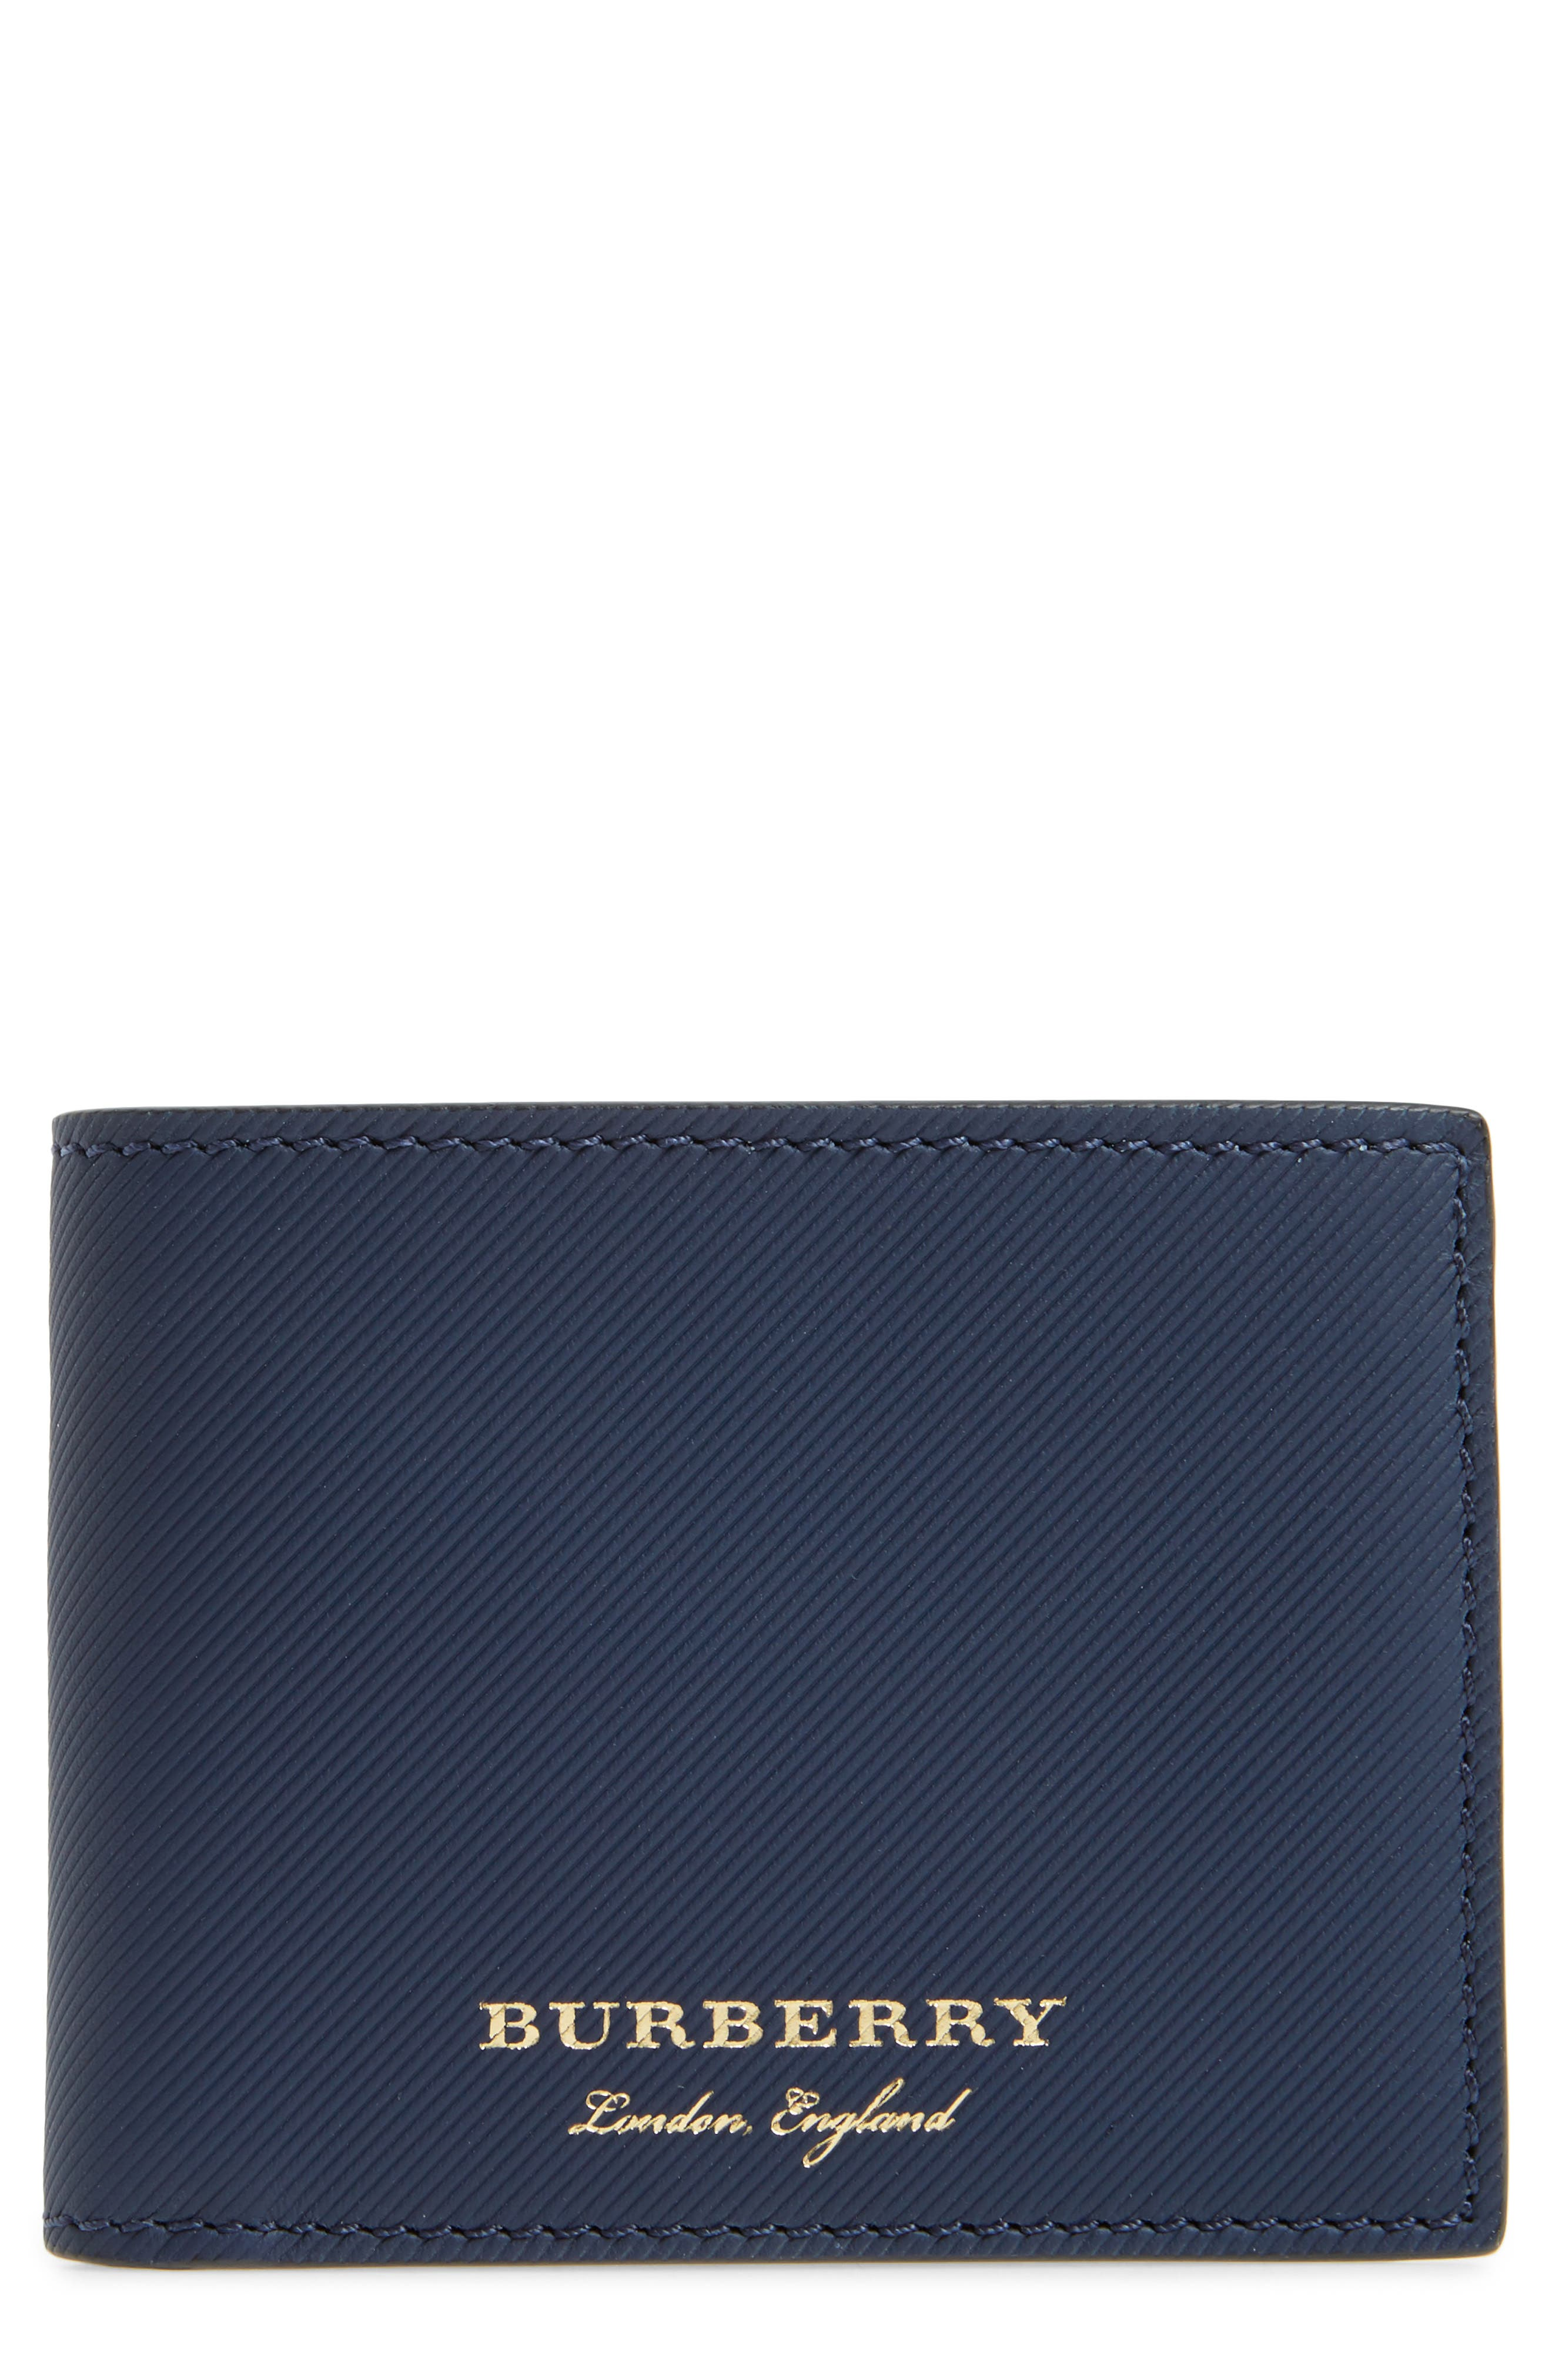 Alternate Image 1 Selected - Burberry Trench Leather Wallet